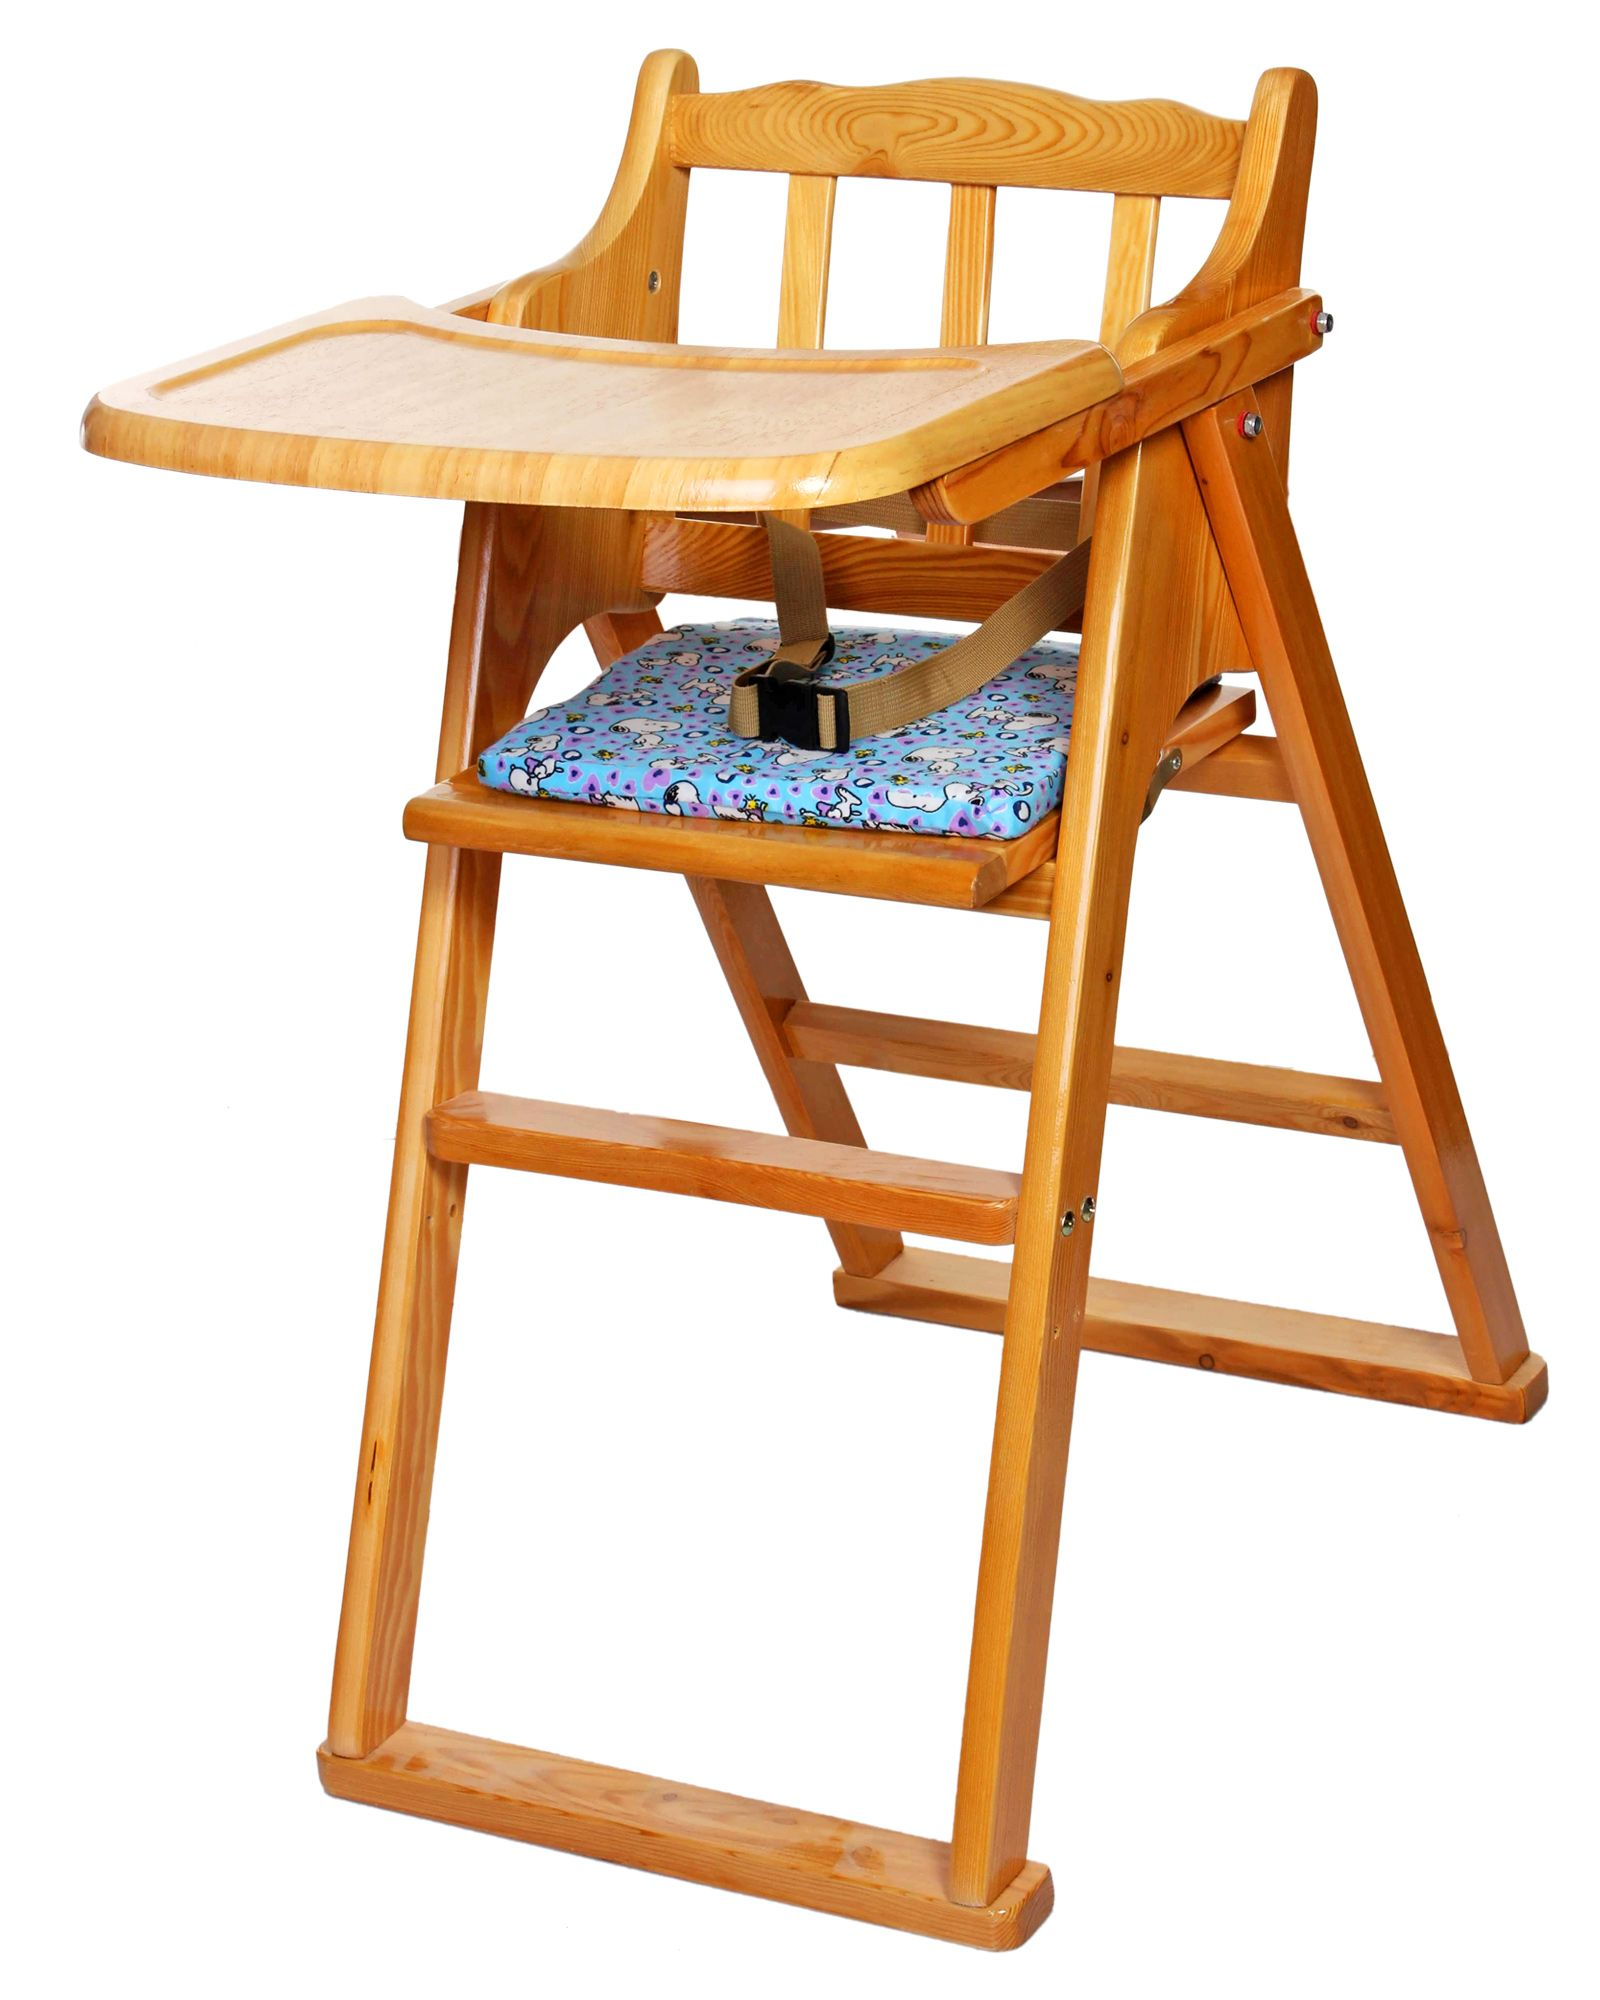 Wooden baby high chair - Superb Img Of Wooden High Chair Online In India Buy At Best Price From Firstcry